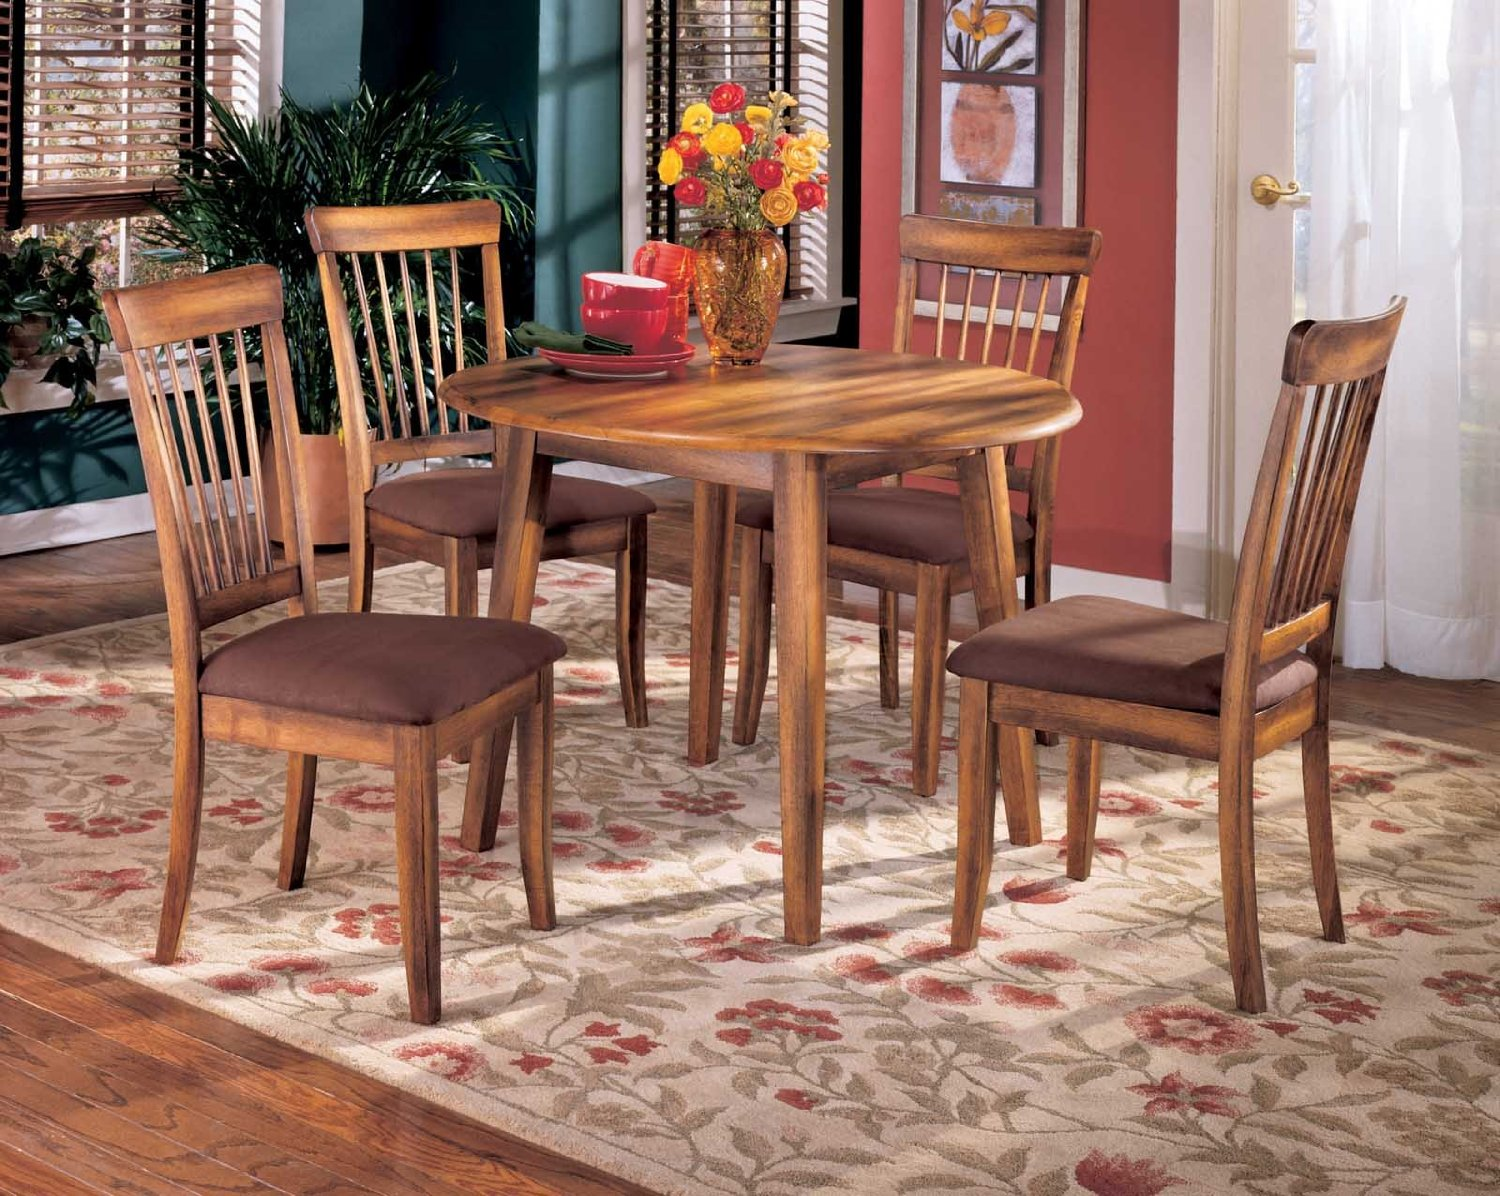 Signature Design by Ashley Berringer Casual Dining Room Set with Dining Table and 4 x Dining Chair